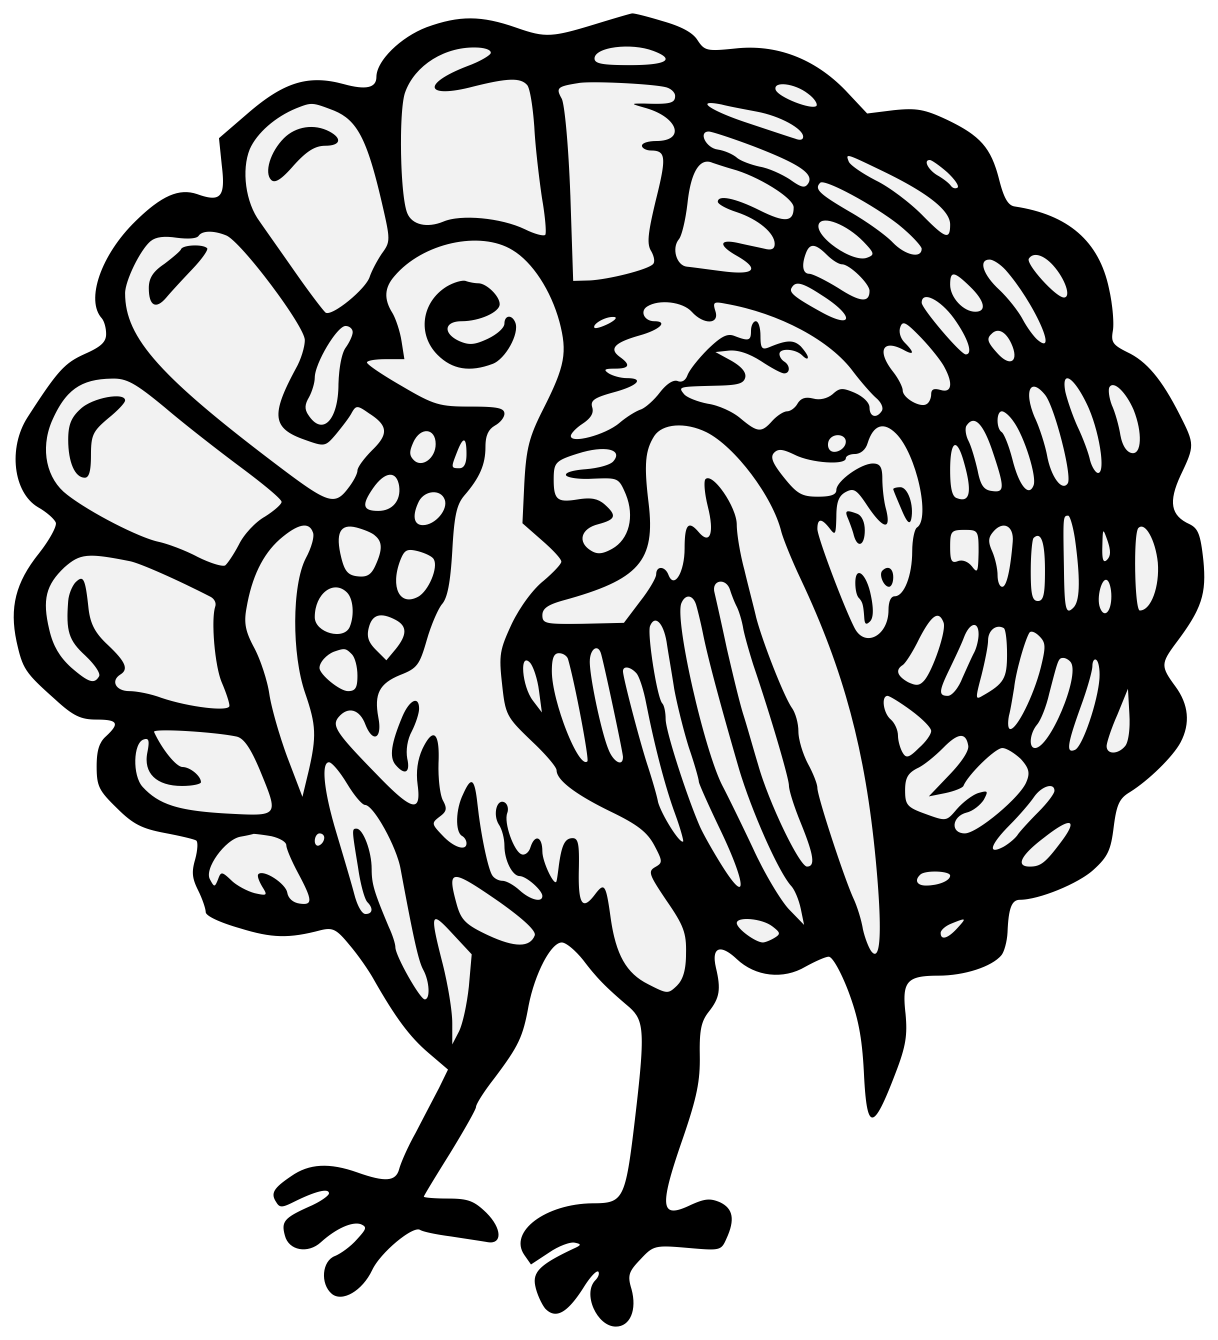 Europe clipart traceable. Turkeycock heraldic art charge